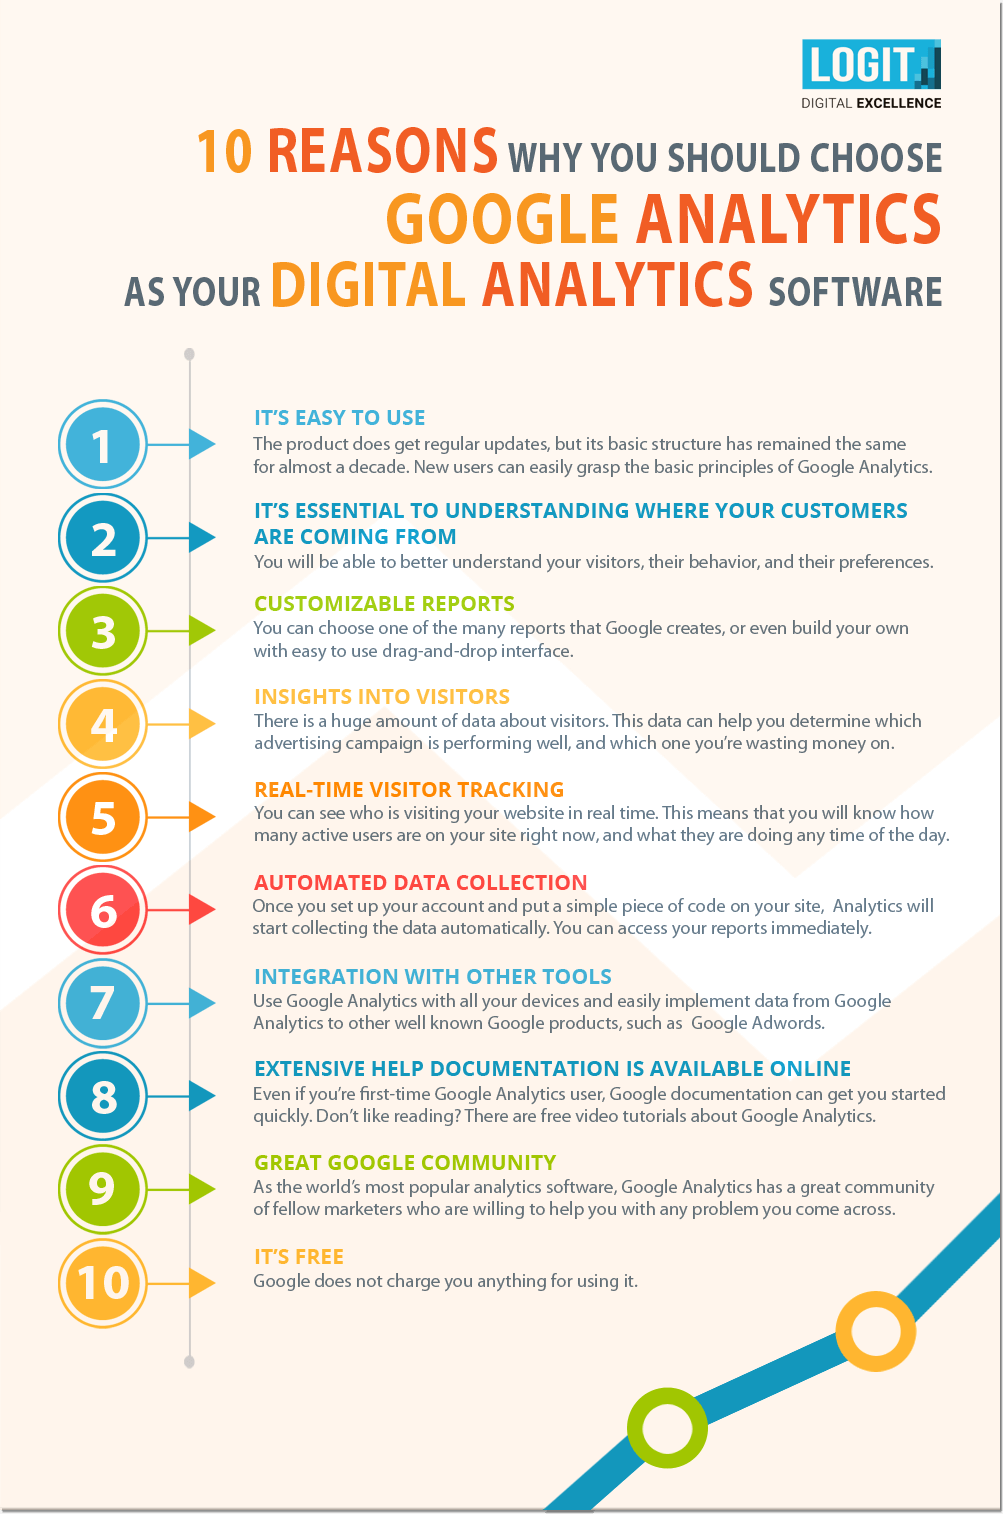 10 Reasons to Use Google Analytics Infographic by Logit Digital Exellence